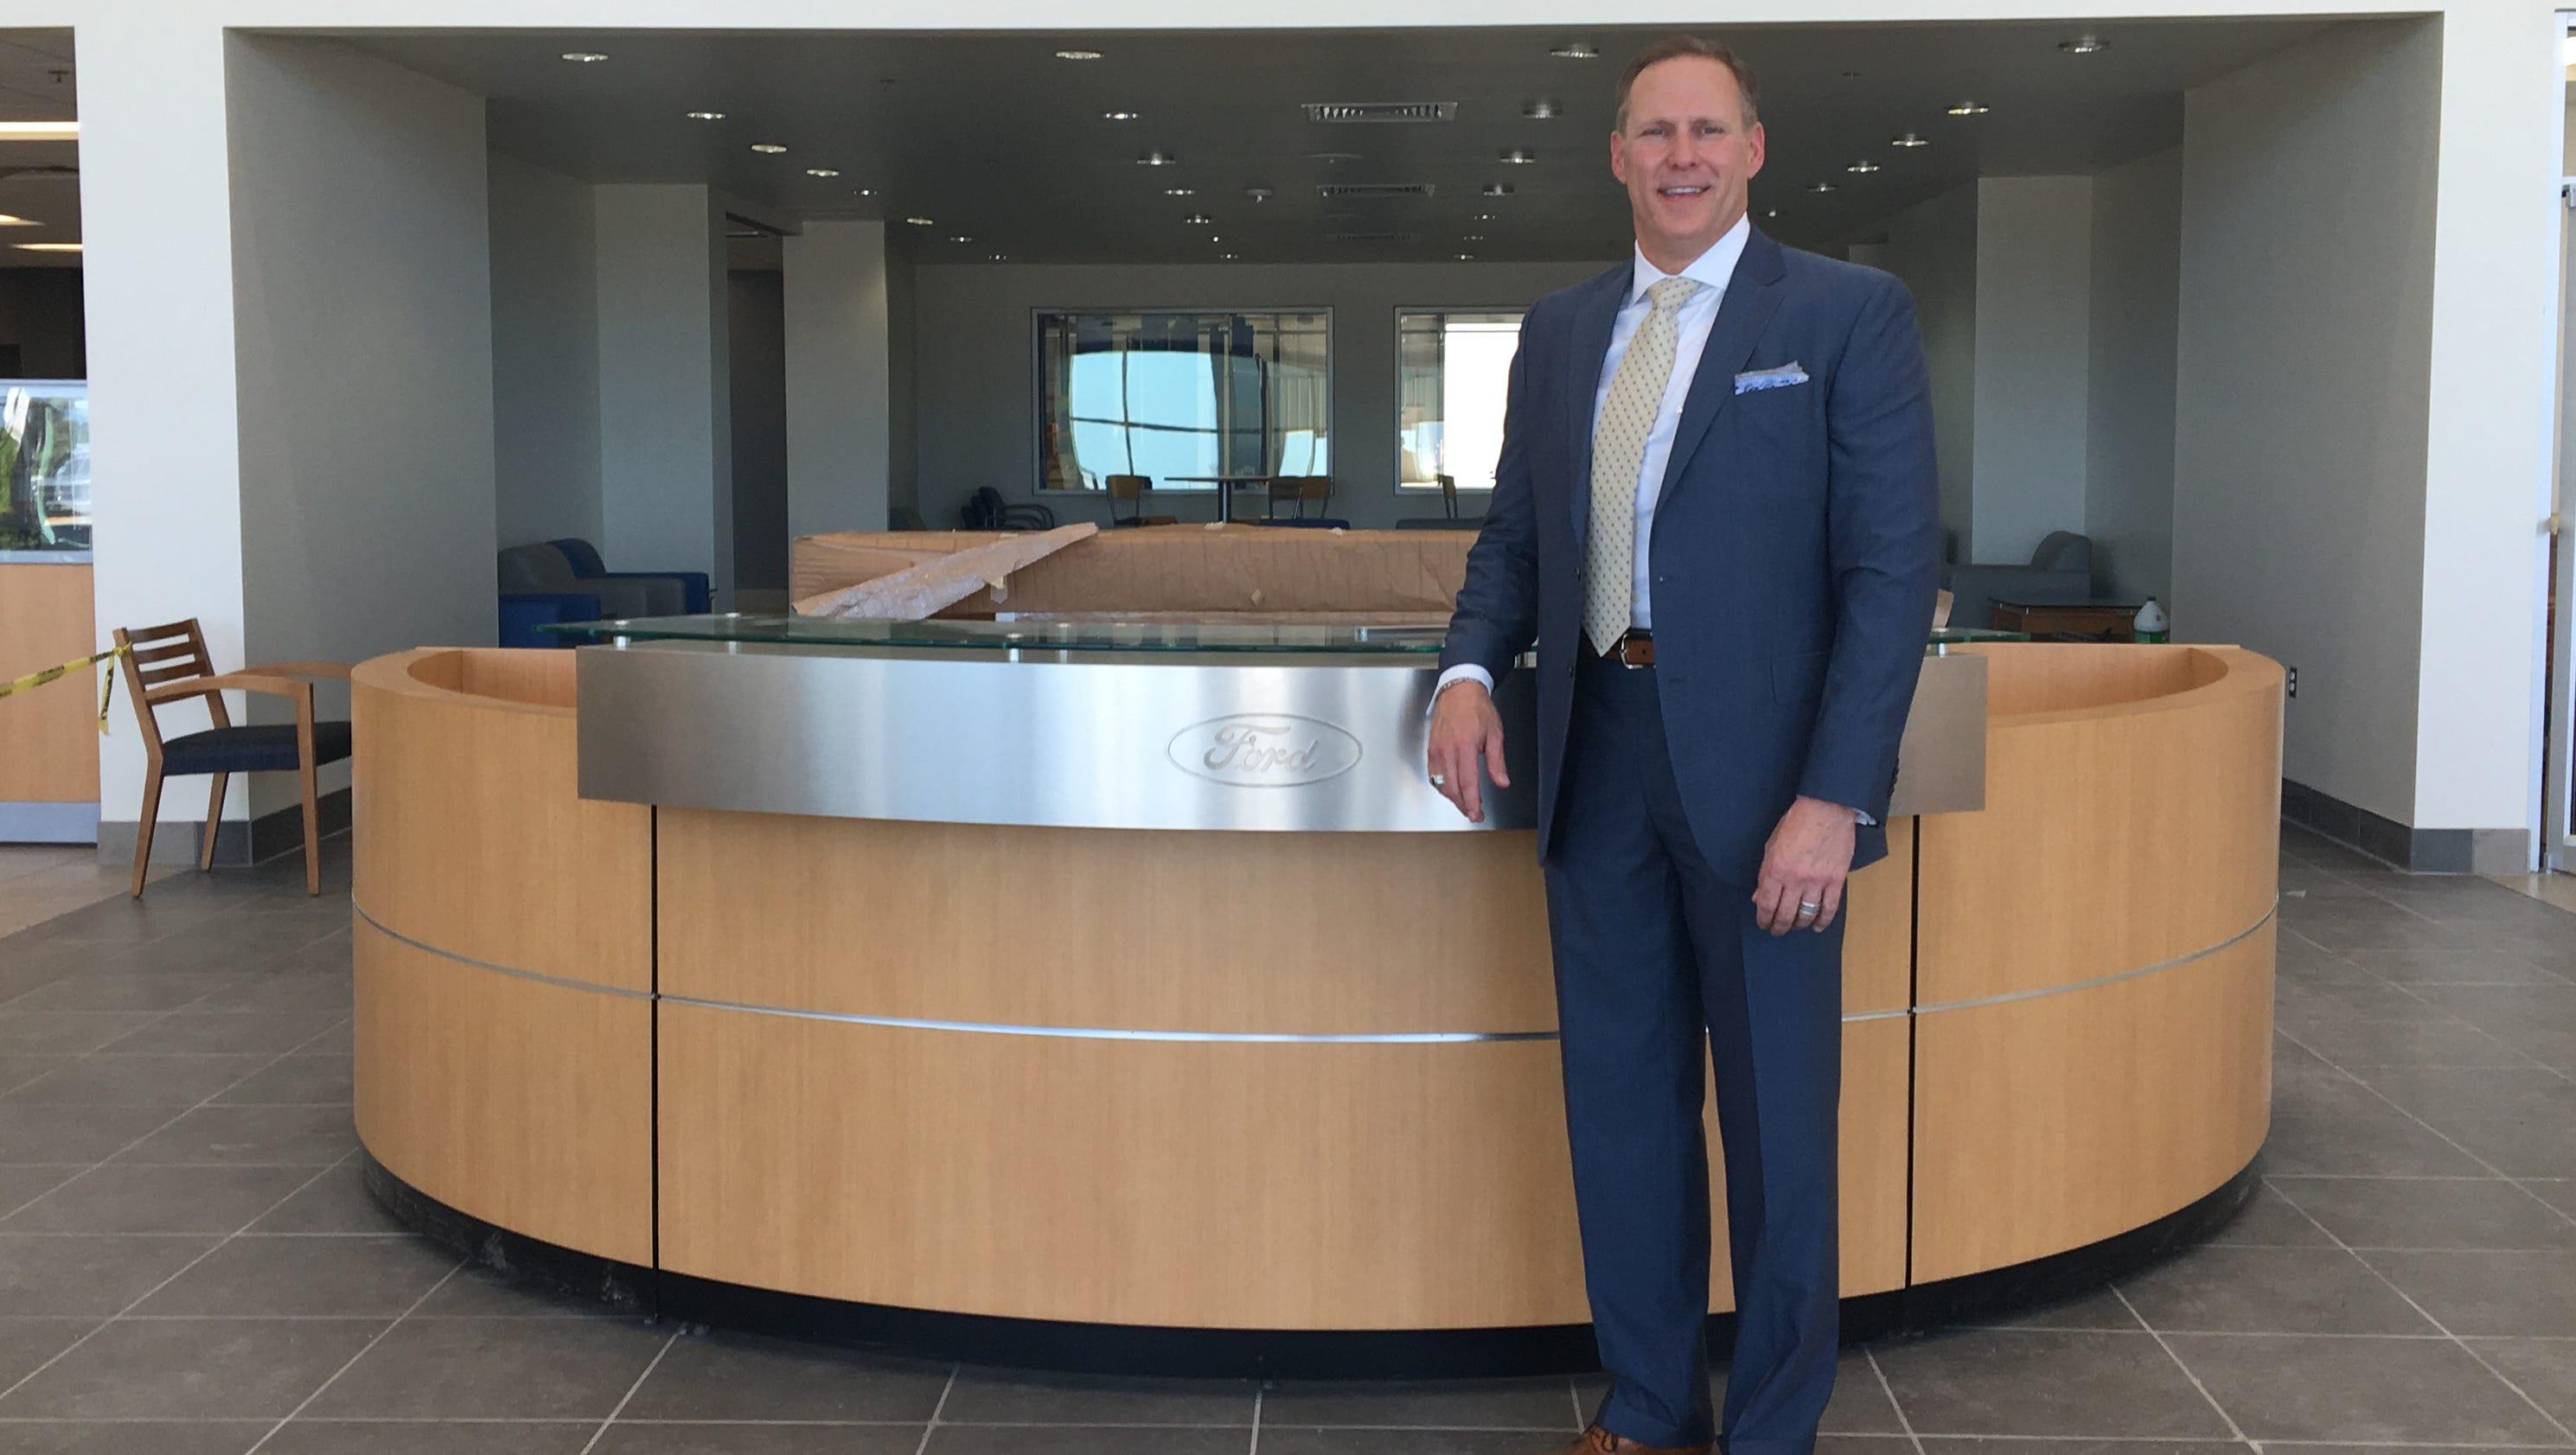 hixson ford doubles in size at new location. Cars Review. Best American Auto & Cars Review